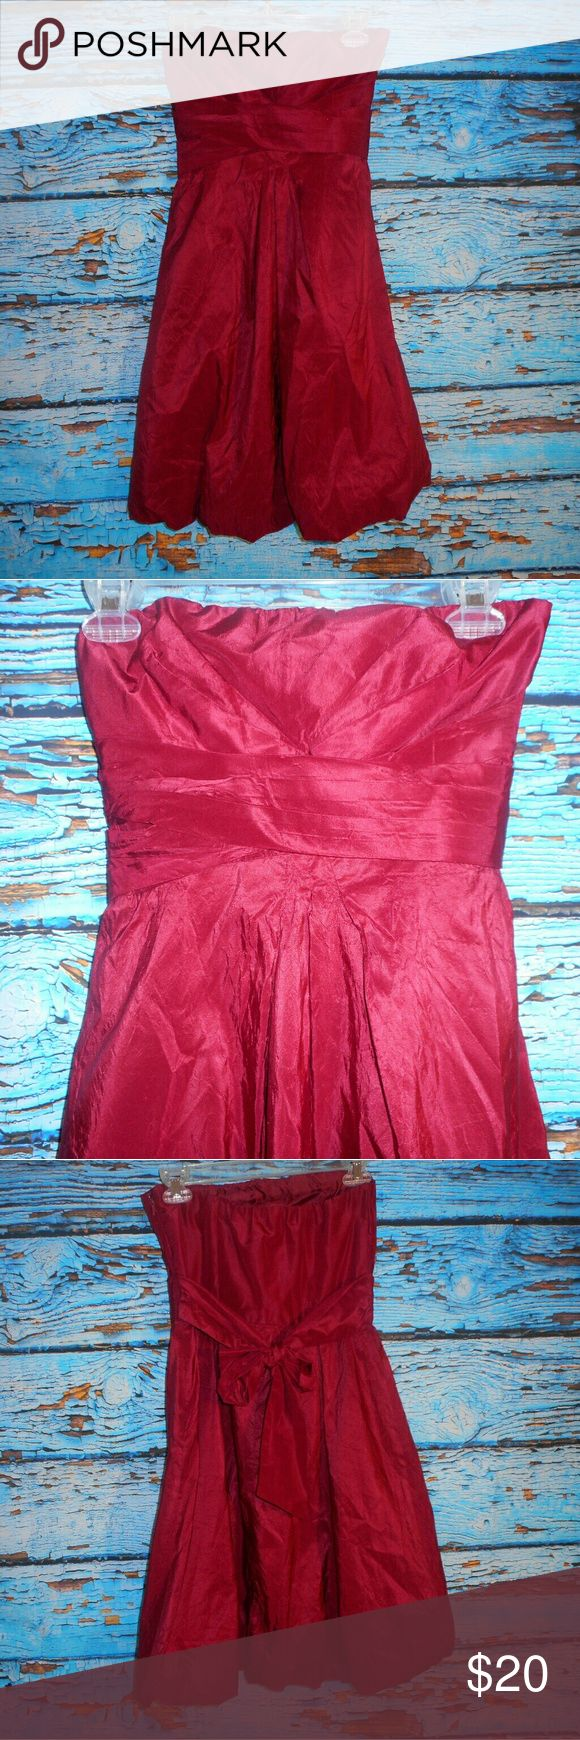 Donna Ricco New York Dark Red Dress Size 4 This beautiful dress was only worn a couple of times and is in very good condition. It measures approximately 28.5 inches down the back of the dress. Pit to pit it measures approximately 13 inches. Donna Ricco Dresses